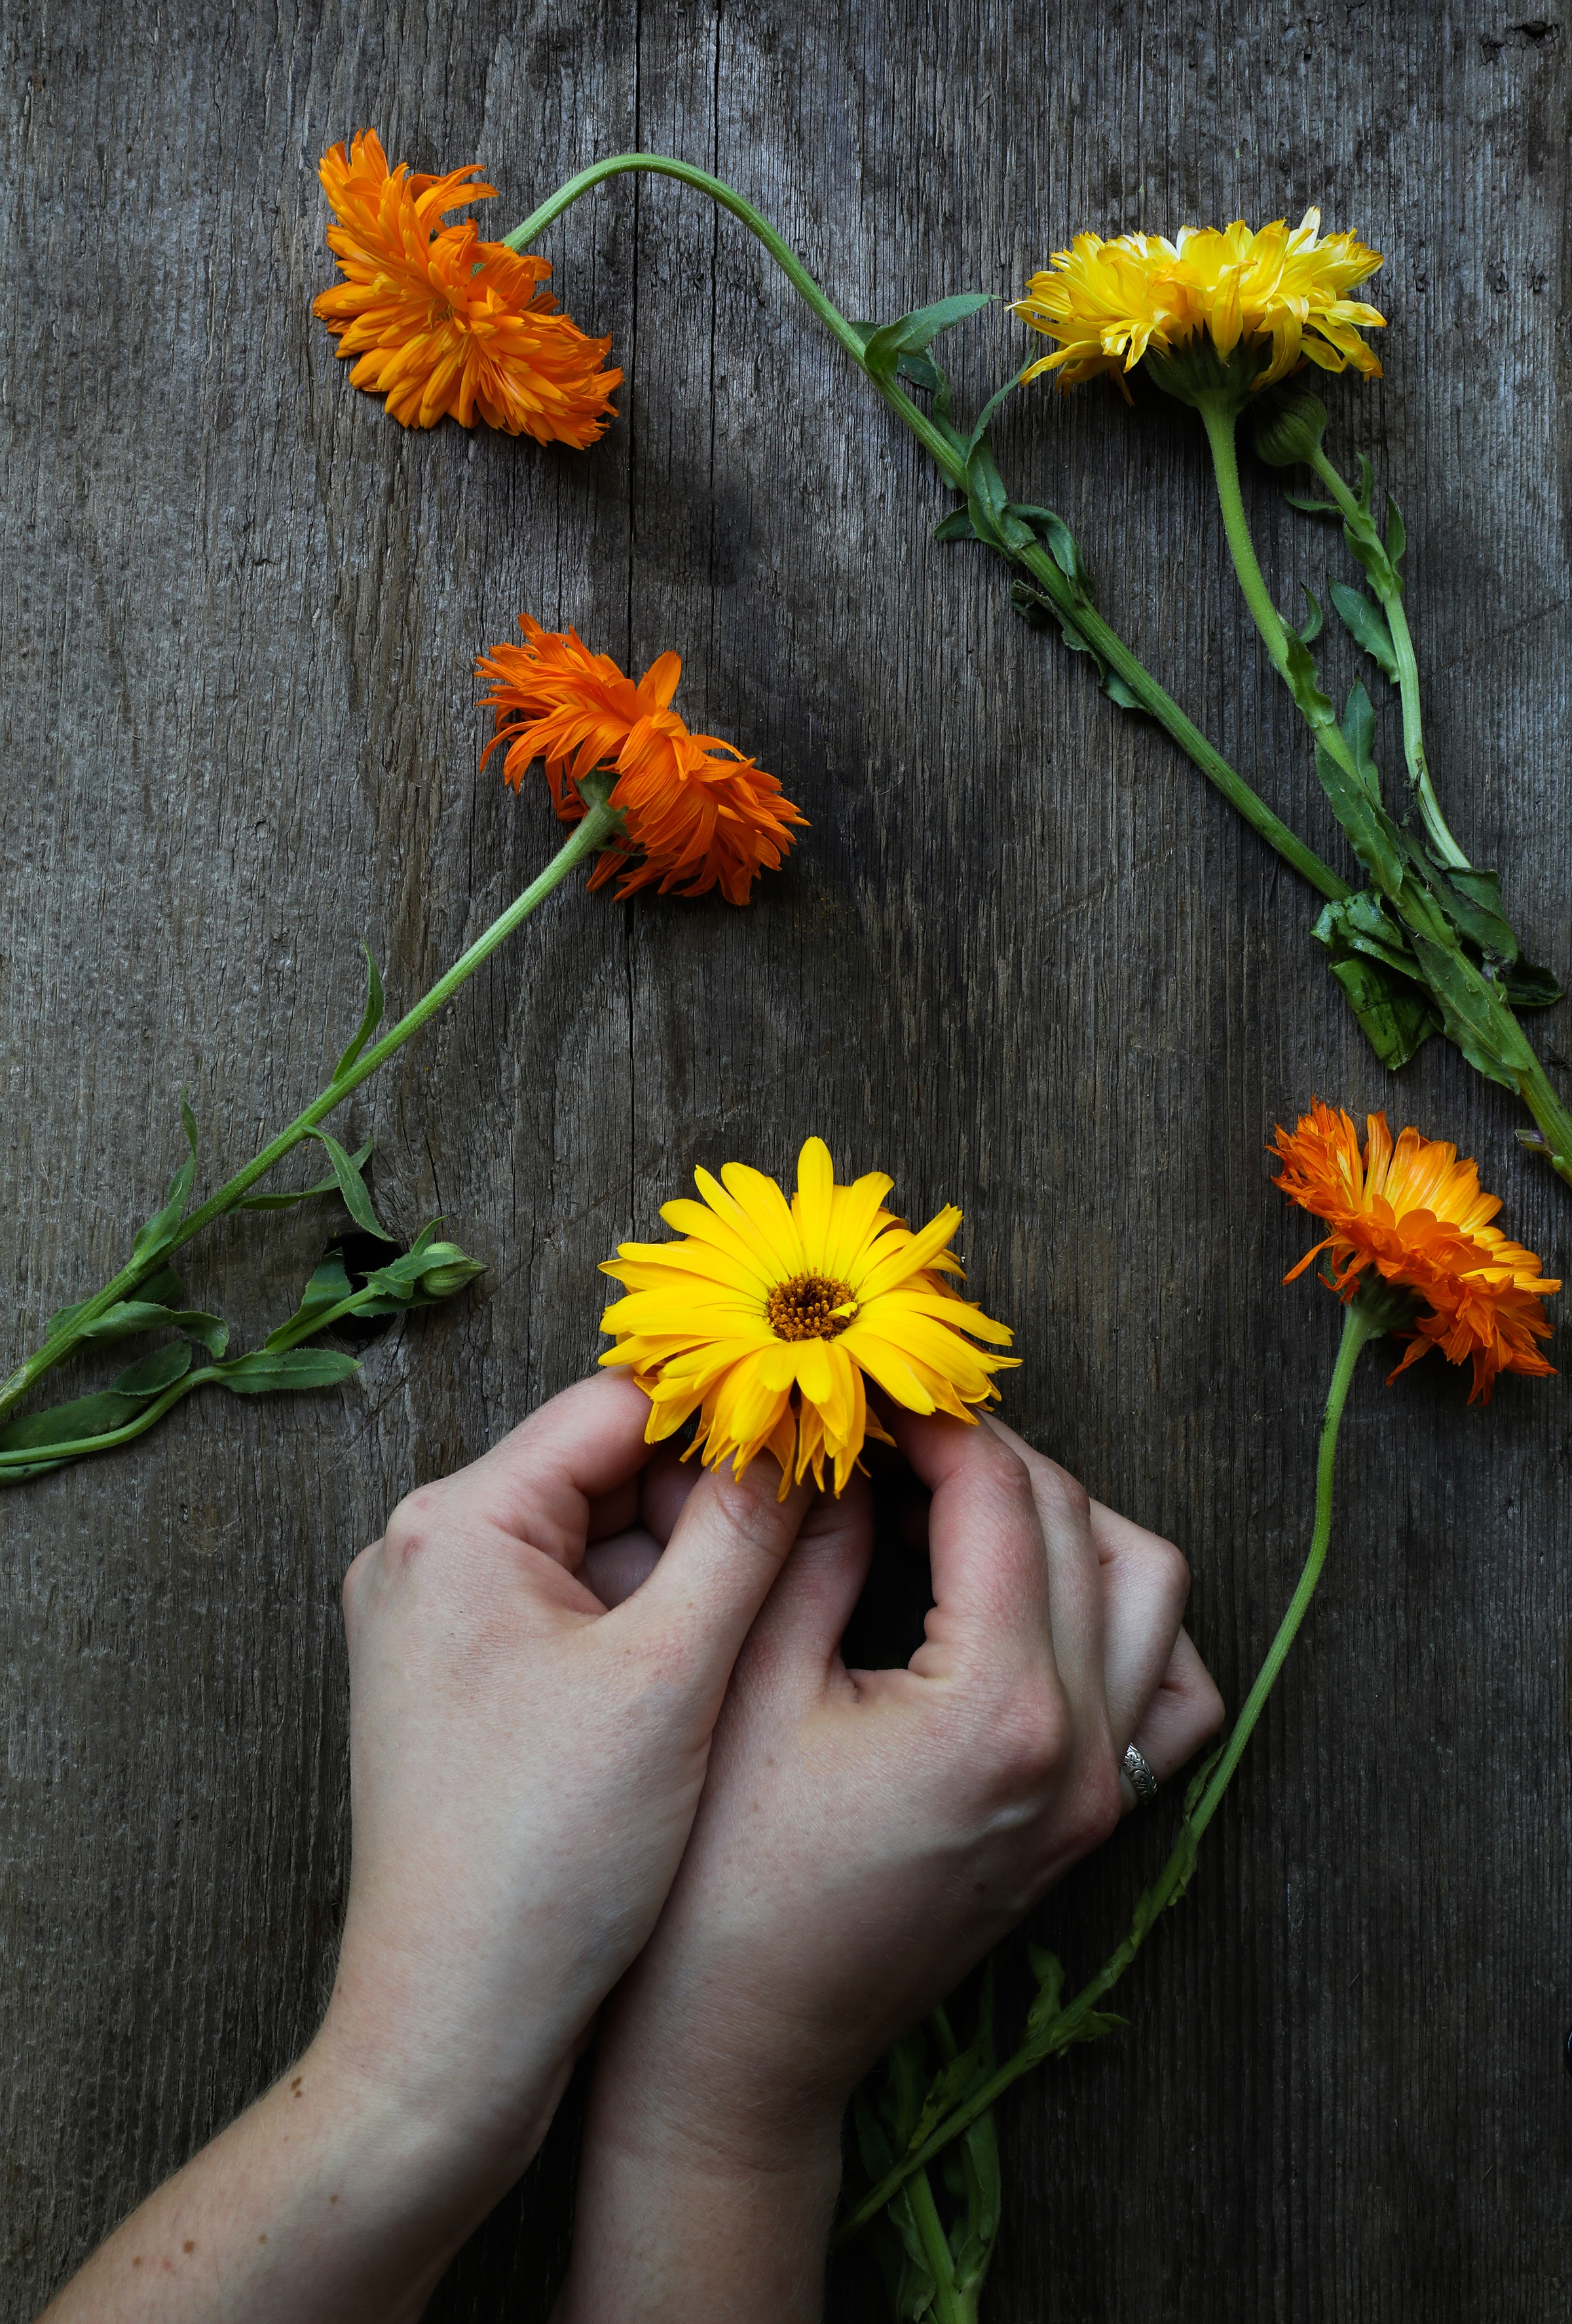 Hands holding a calendula flower on wooden table